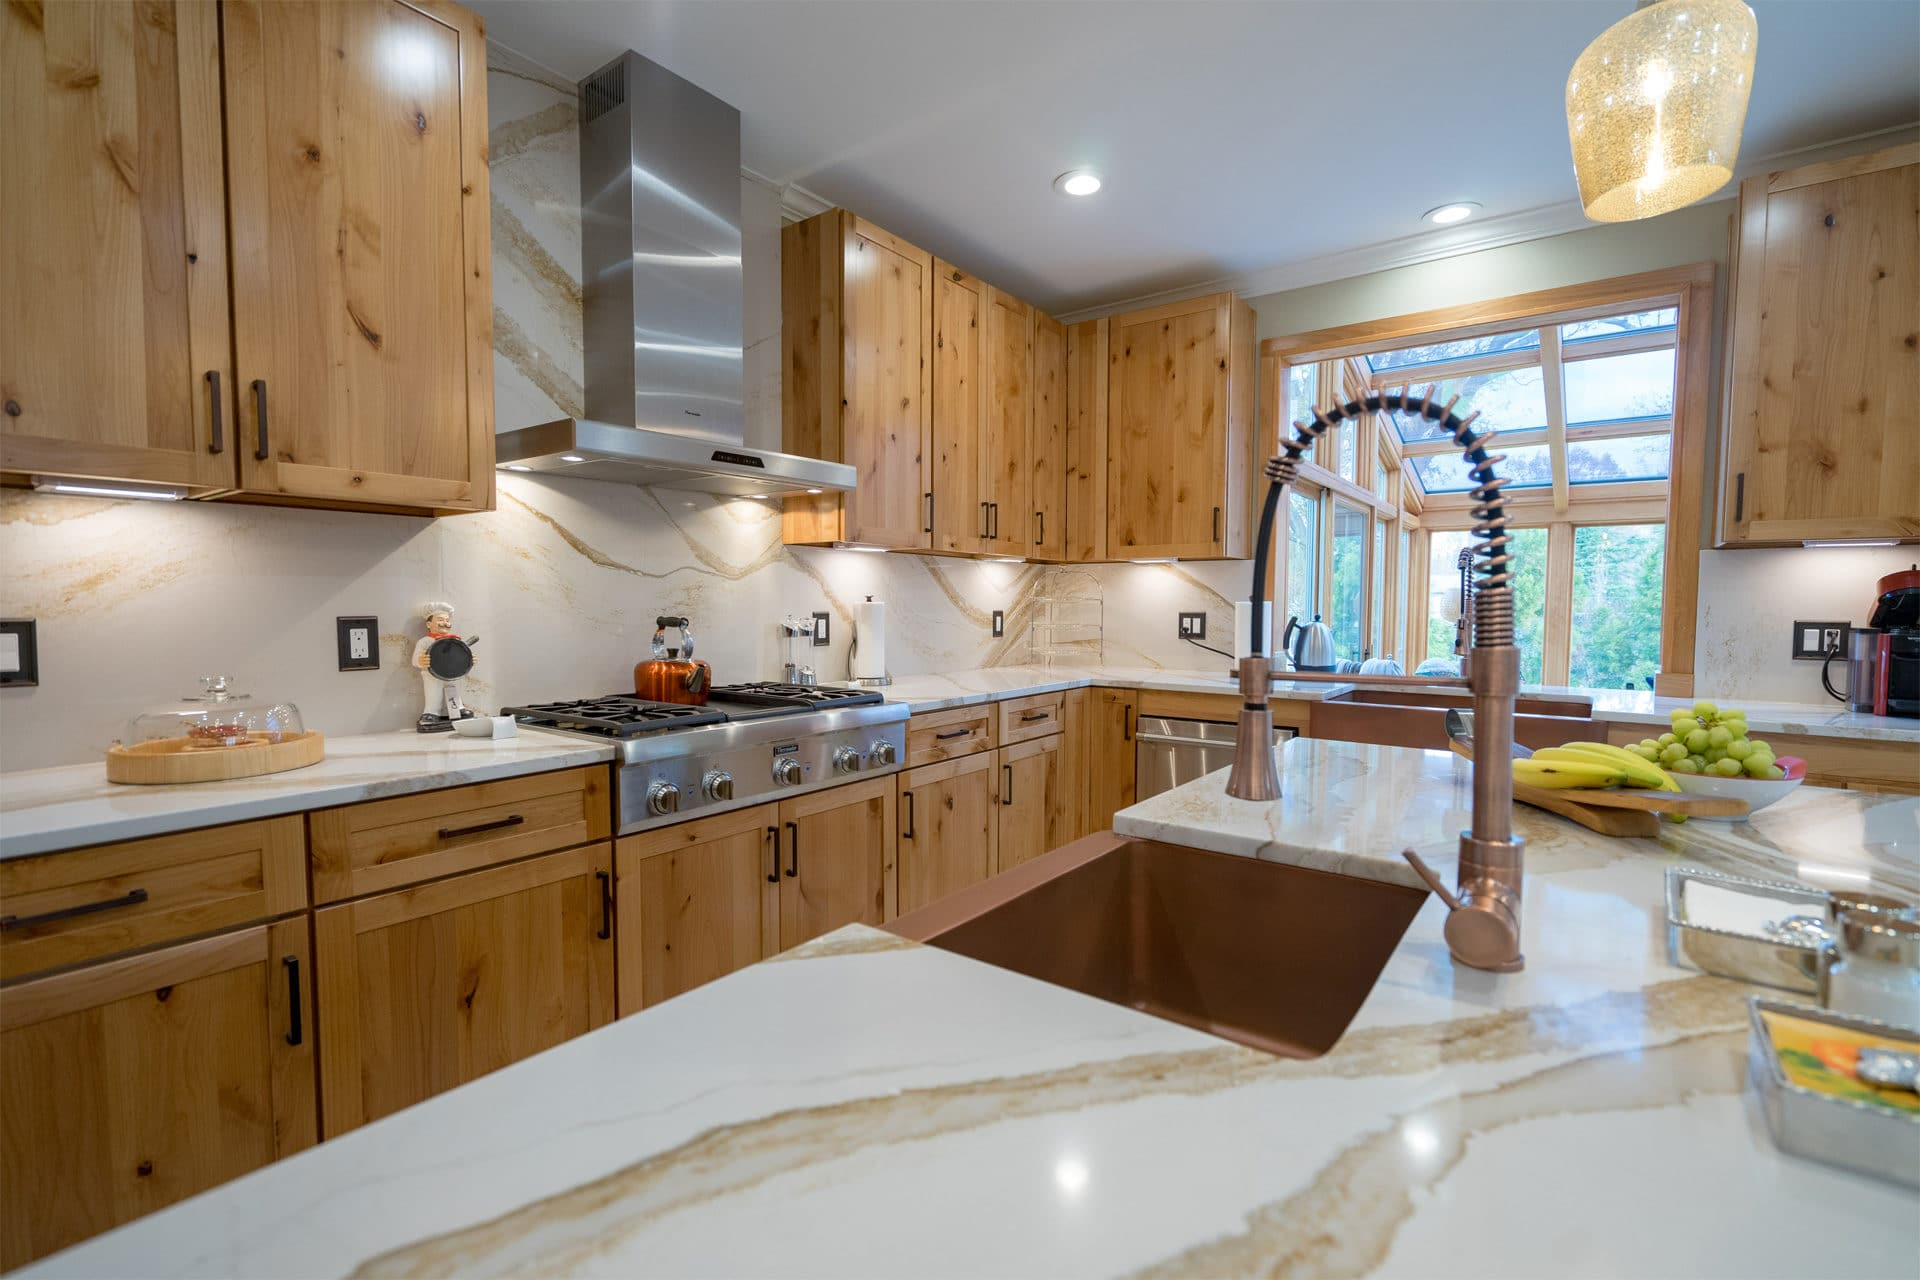 Need Remodeling Design Advice?